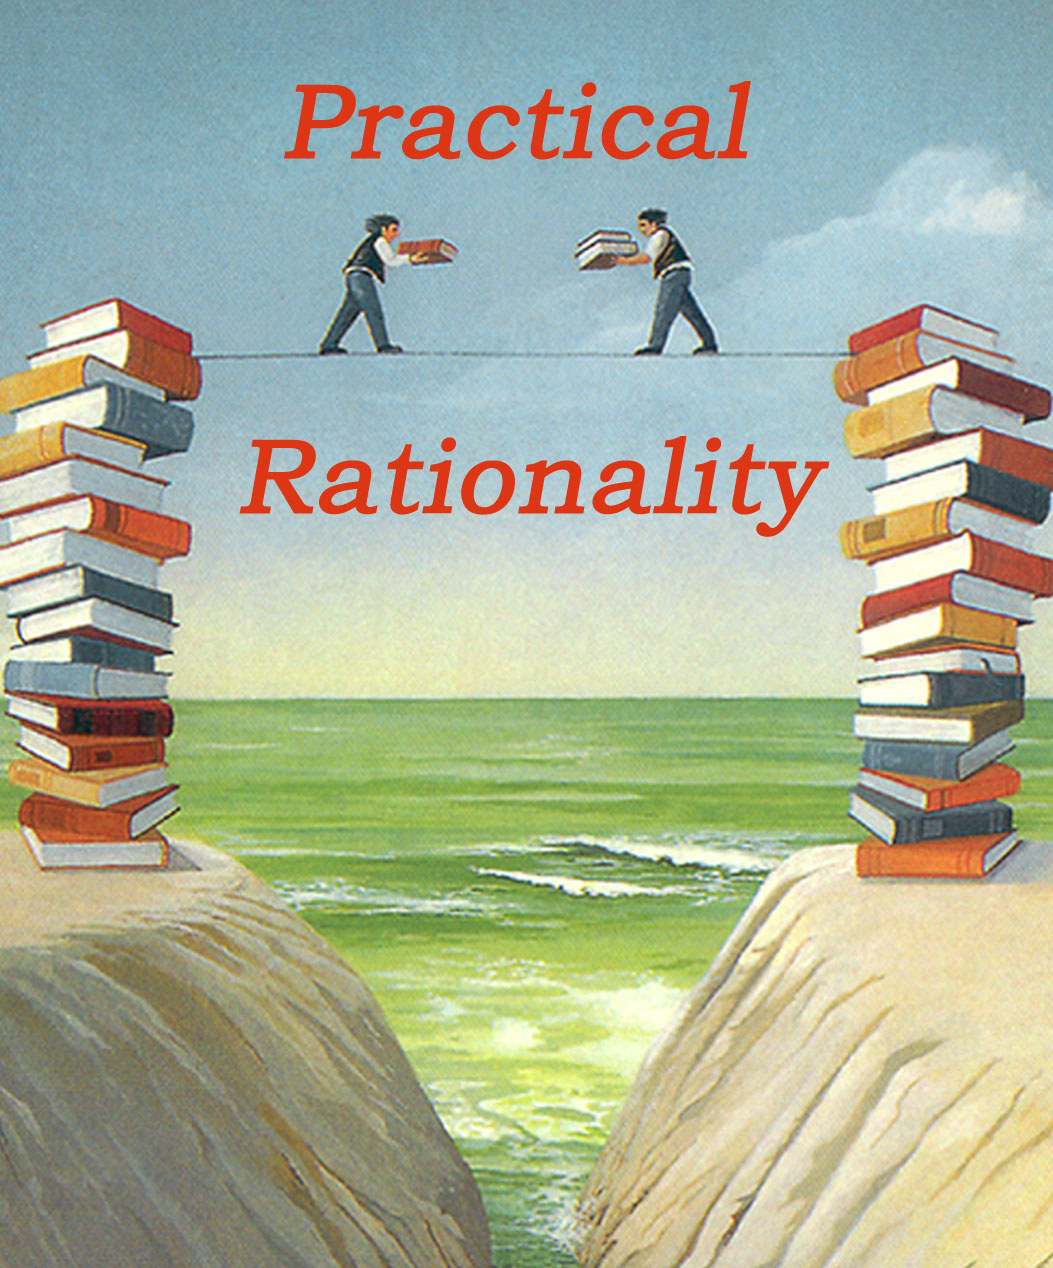 Practical Rationality